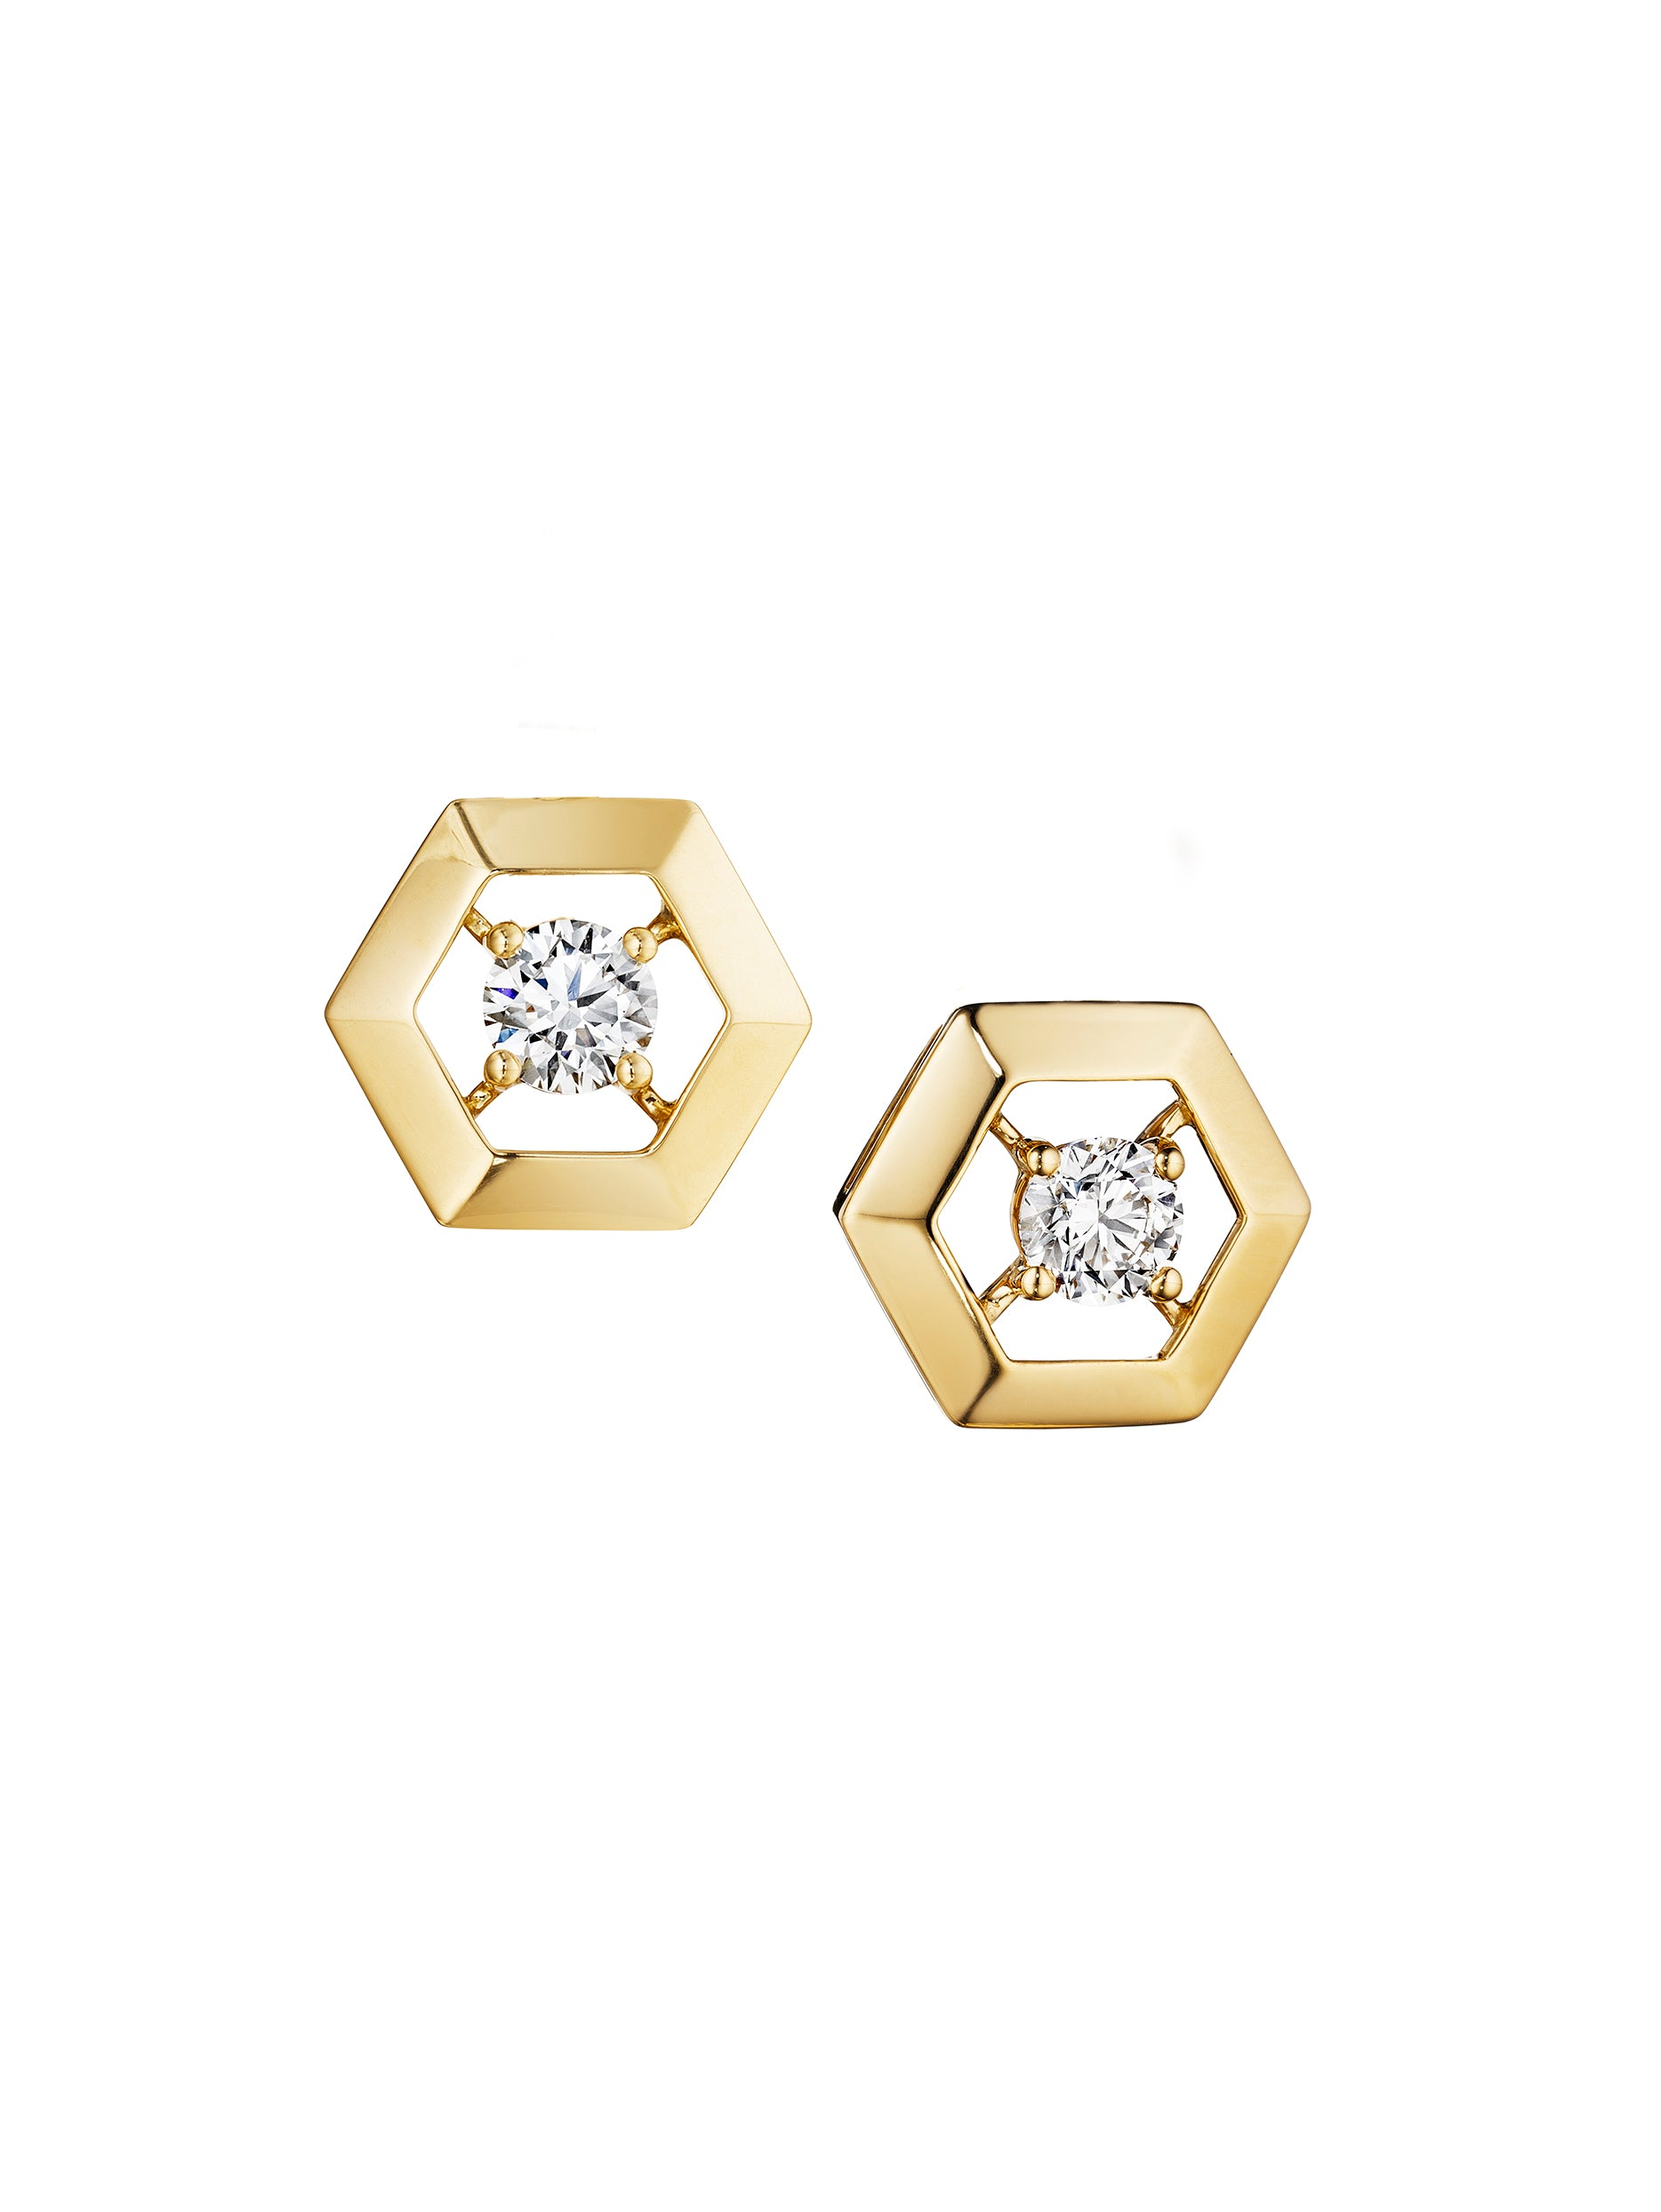 keynes stud faith jewelry enlarged diamond walters signature hexagon earrings products